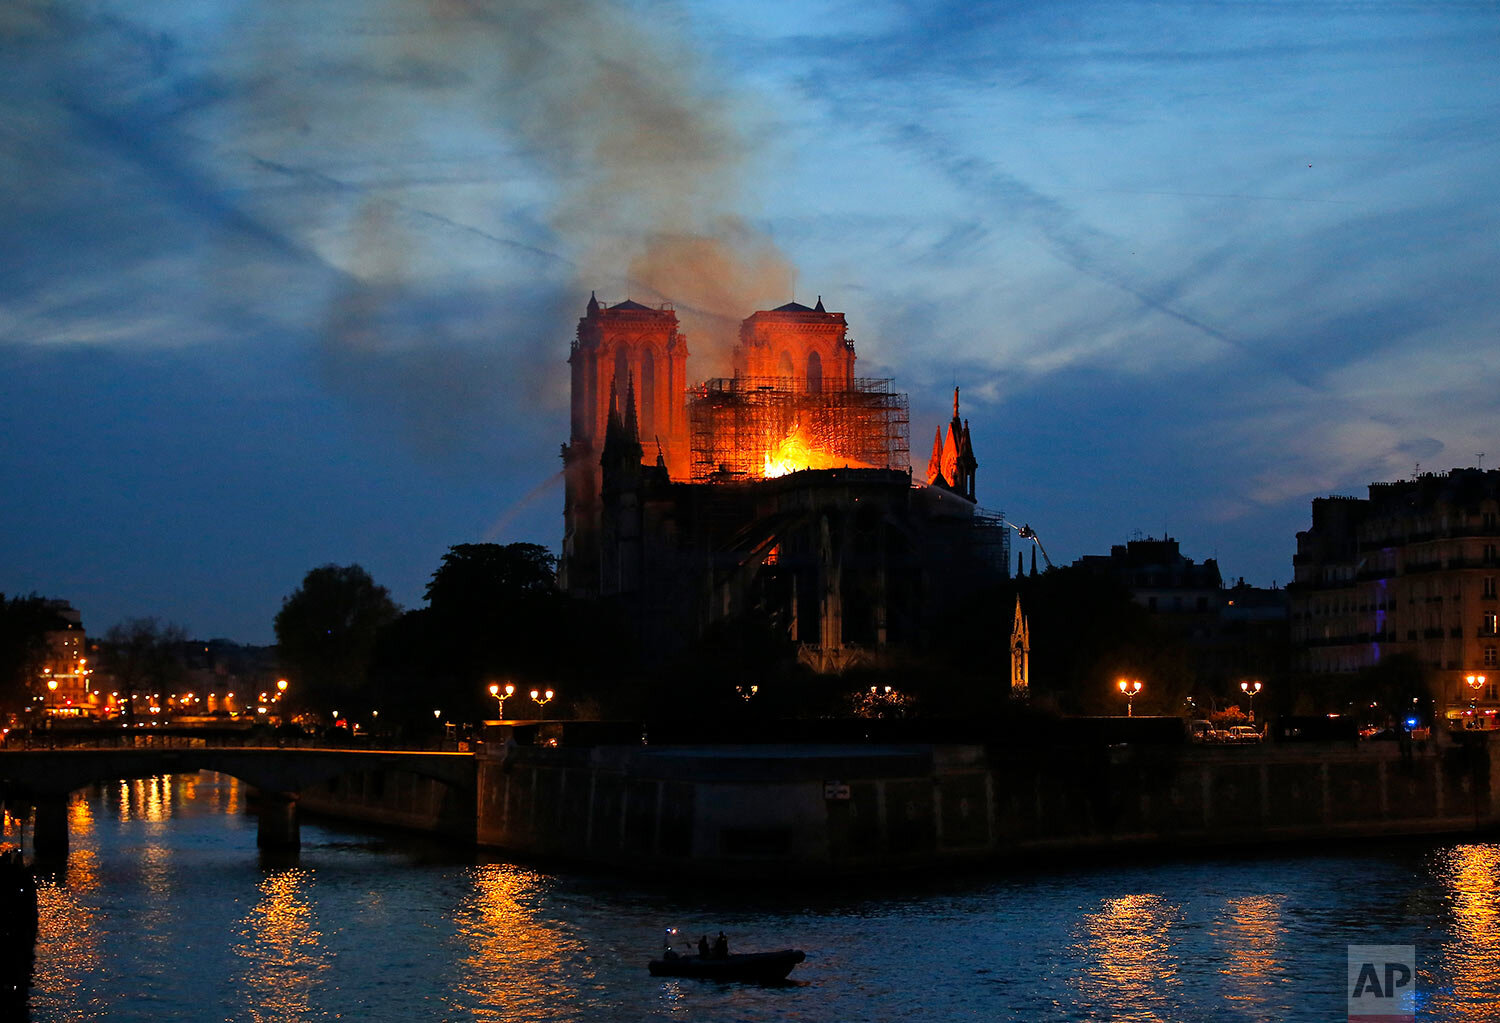 Flames and smoke rise from Notre Dame cathedral in Paris as firefighters tackle the blaze on April 15, 2019. (AP Photo/Michel Euler)